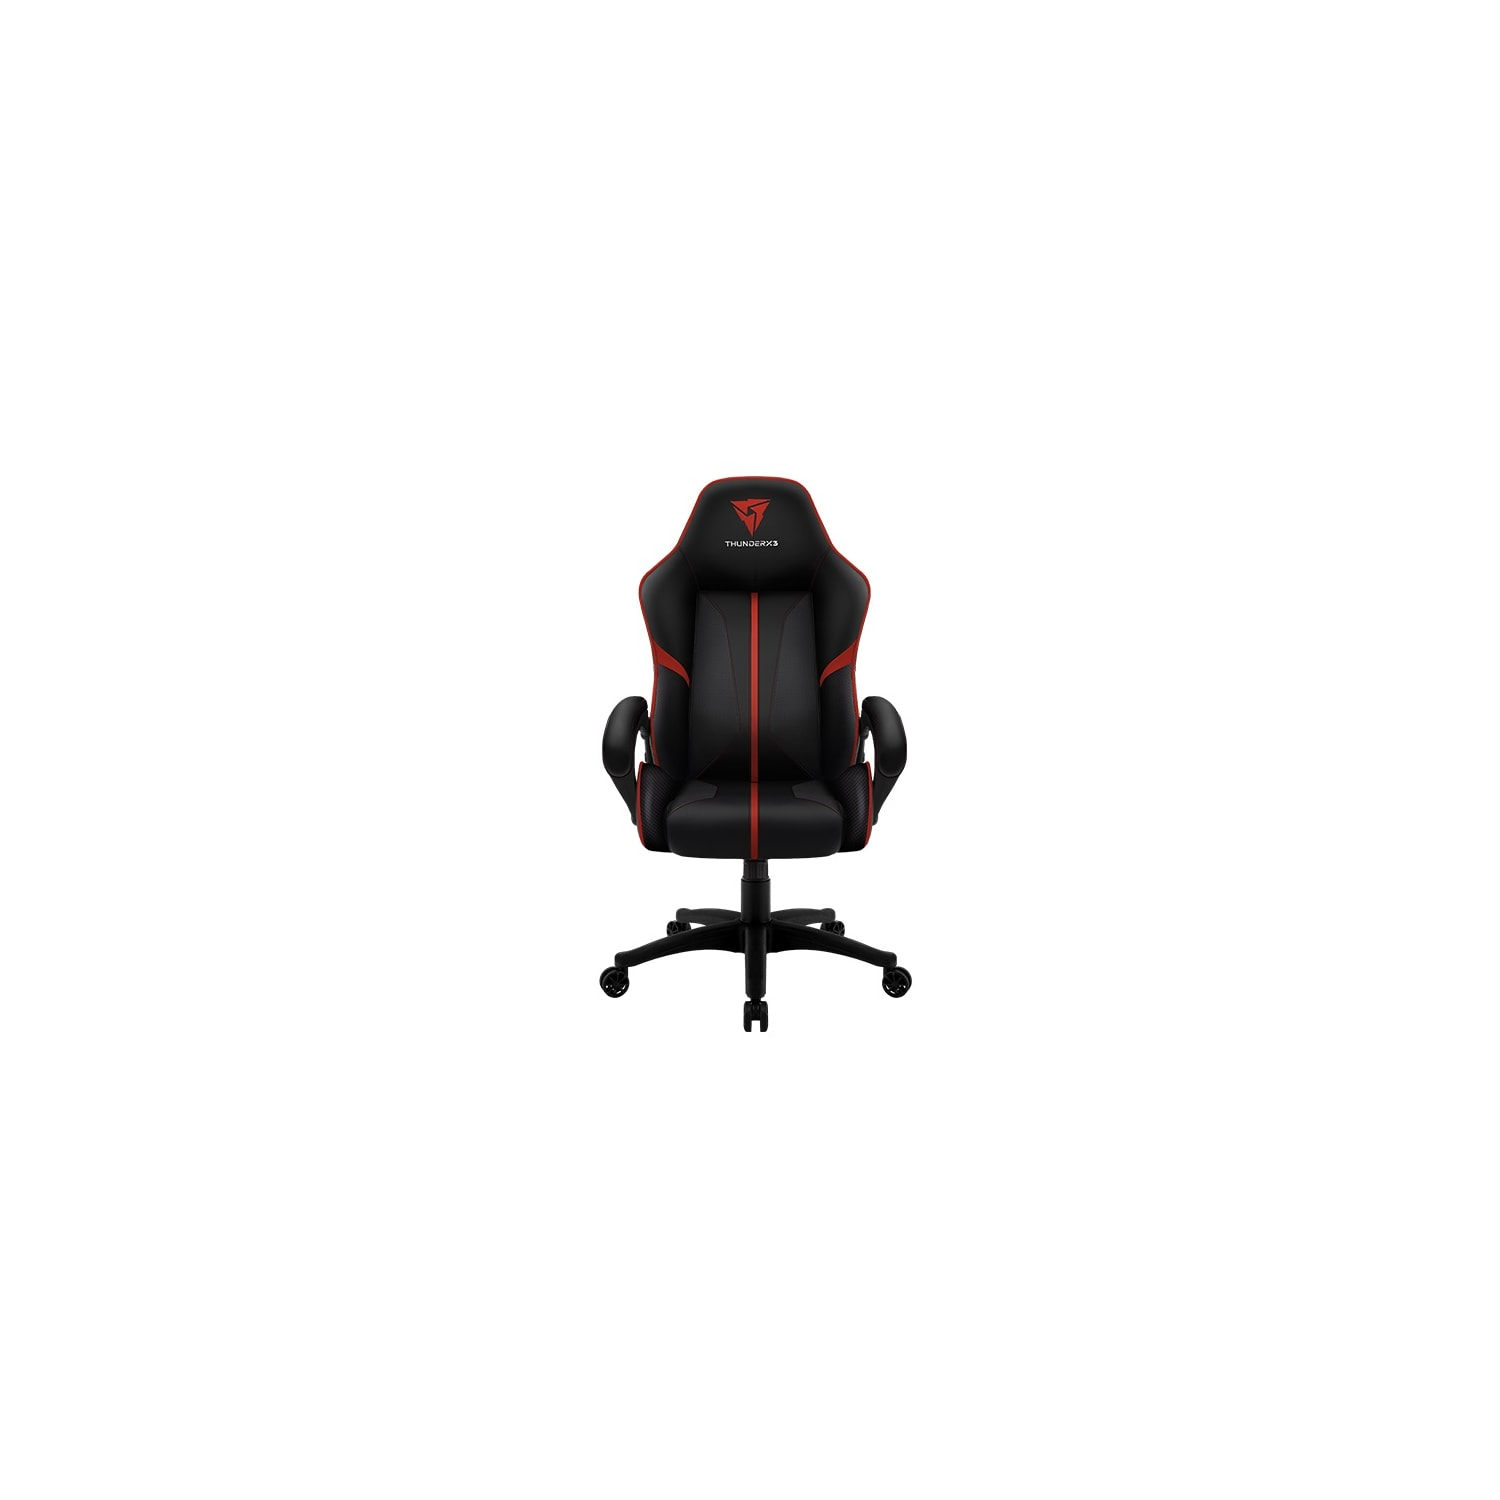 Awesome Thunderx3 Bc1 Series Gaming Chair Black Red Pdpeps Interior Chair Design Pdpepsorg